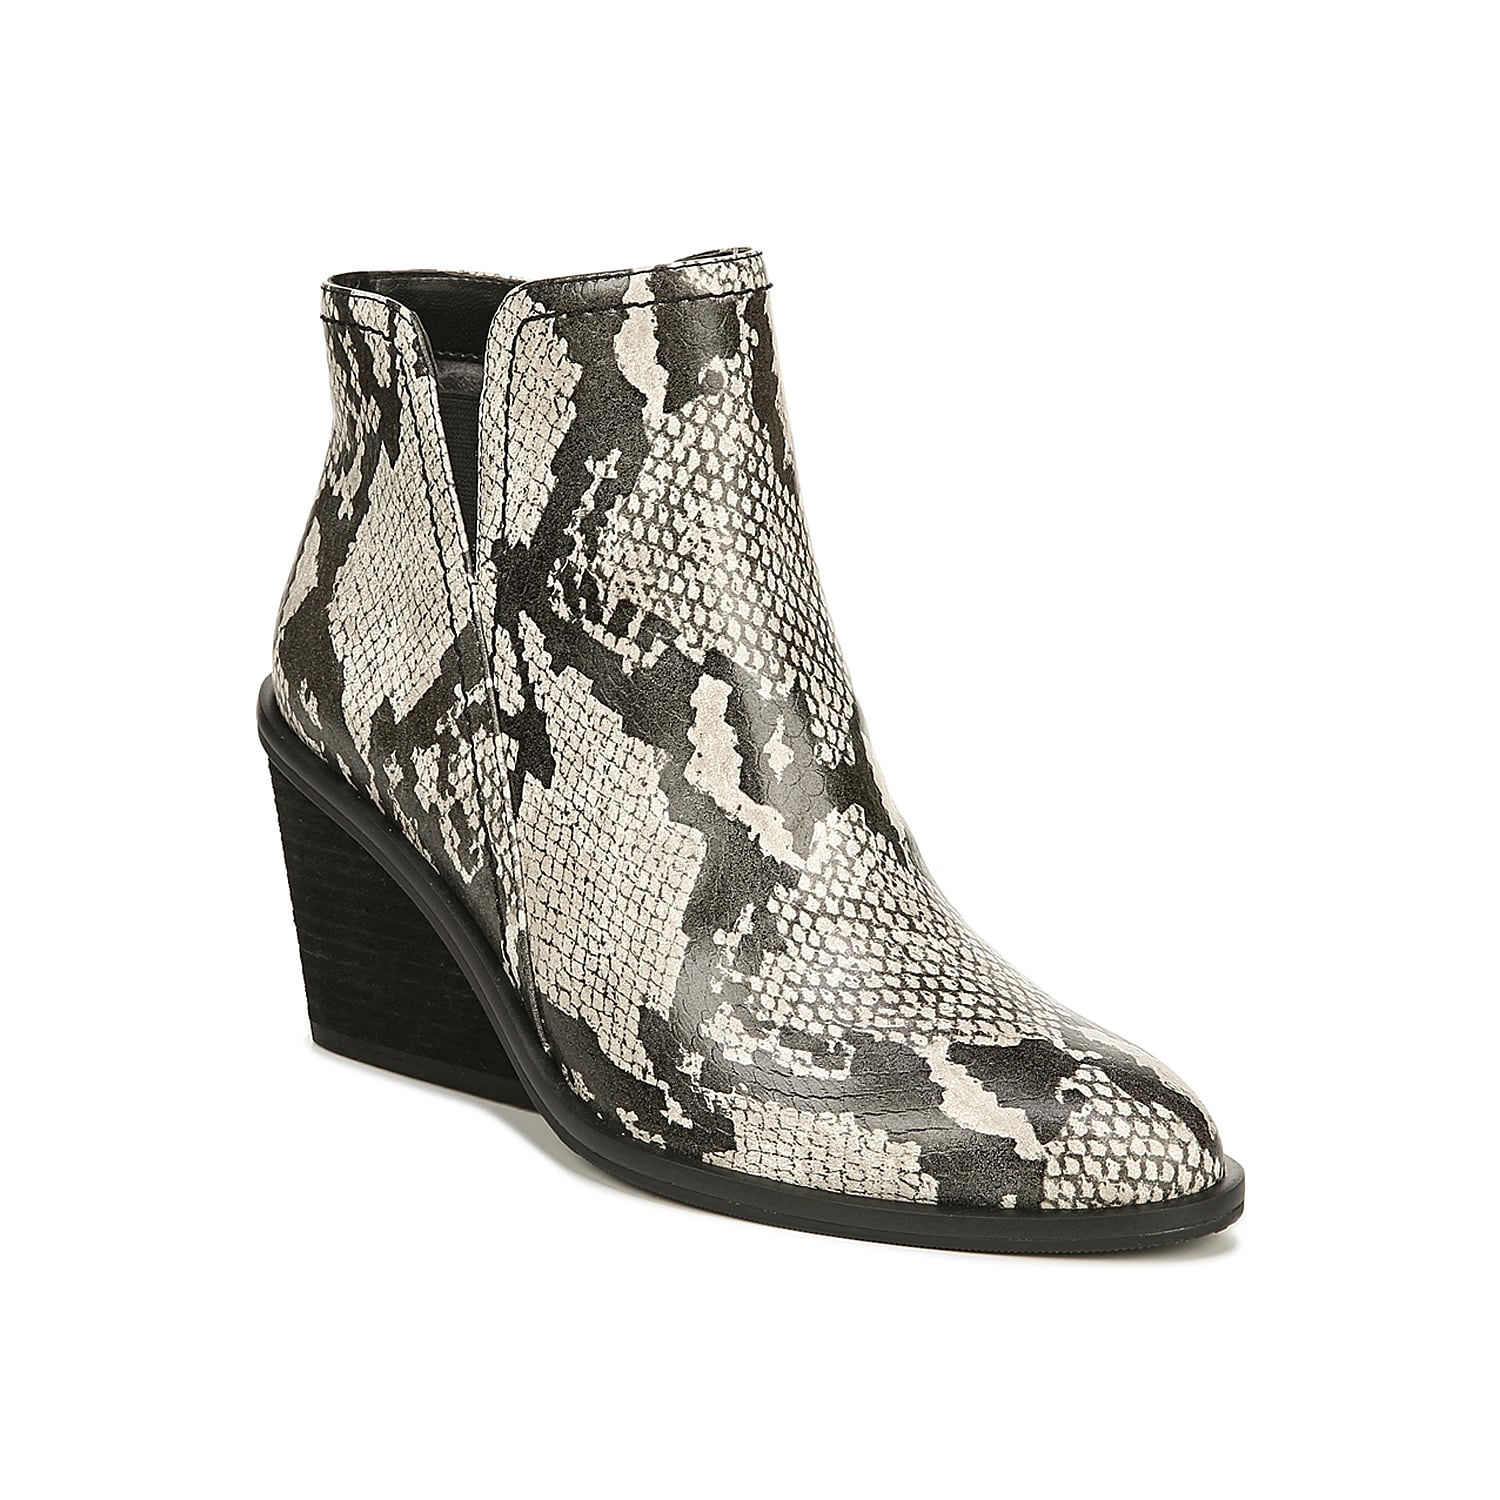 The Morgan wedge bootie from Dr. Scholl\\\'s blends together comfort and style. The asymmetrical topline and stacked heel will pair with anything from skinny jeans to maxi dresses! Click here for Boot Measuring Guide.